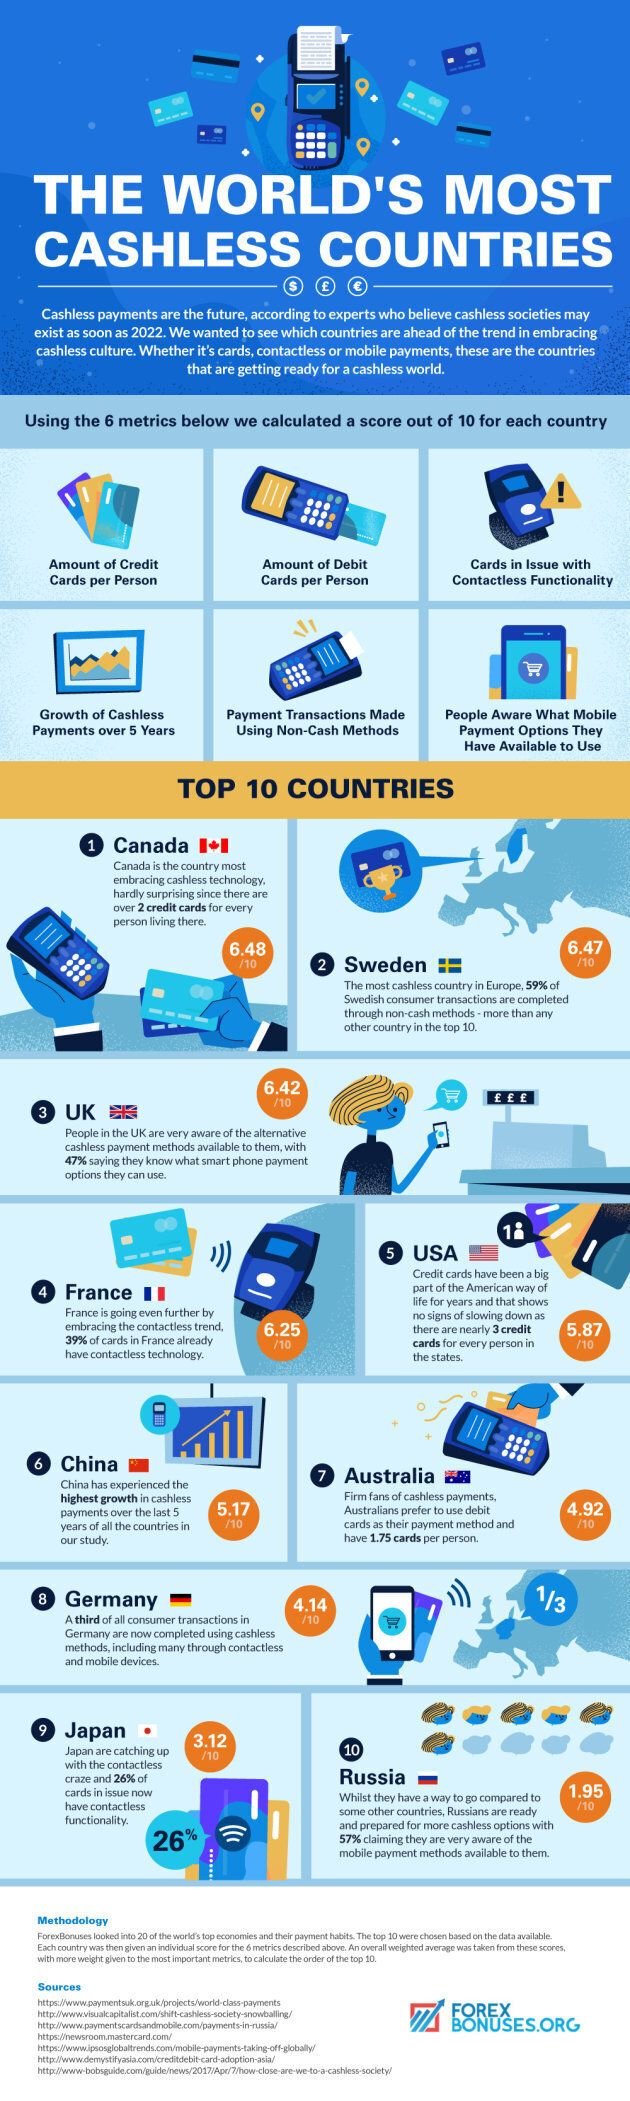 Canada At #1 In Ranking Of World's Most Cashless